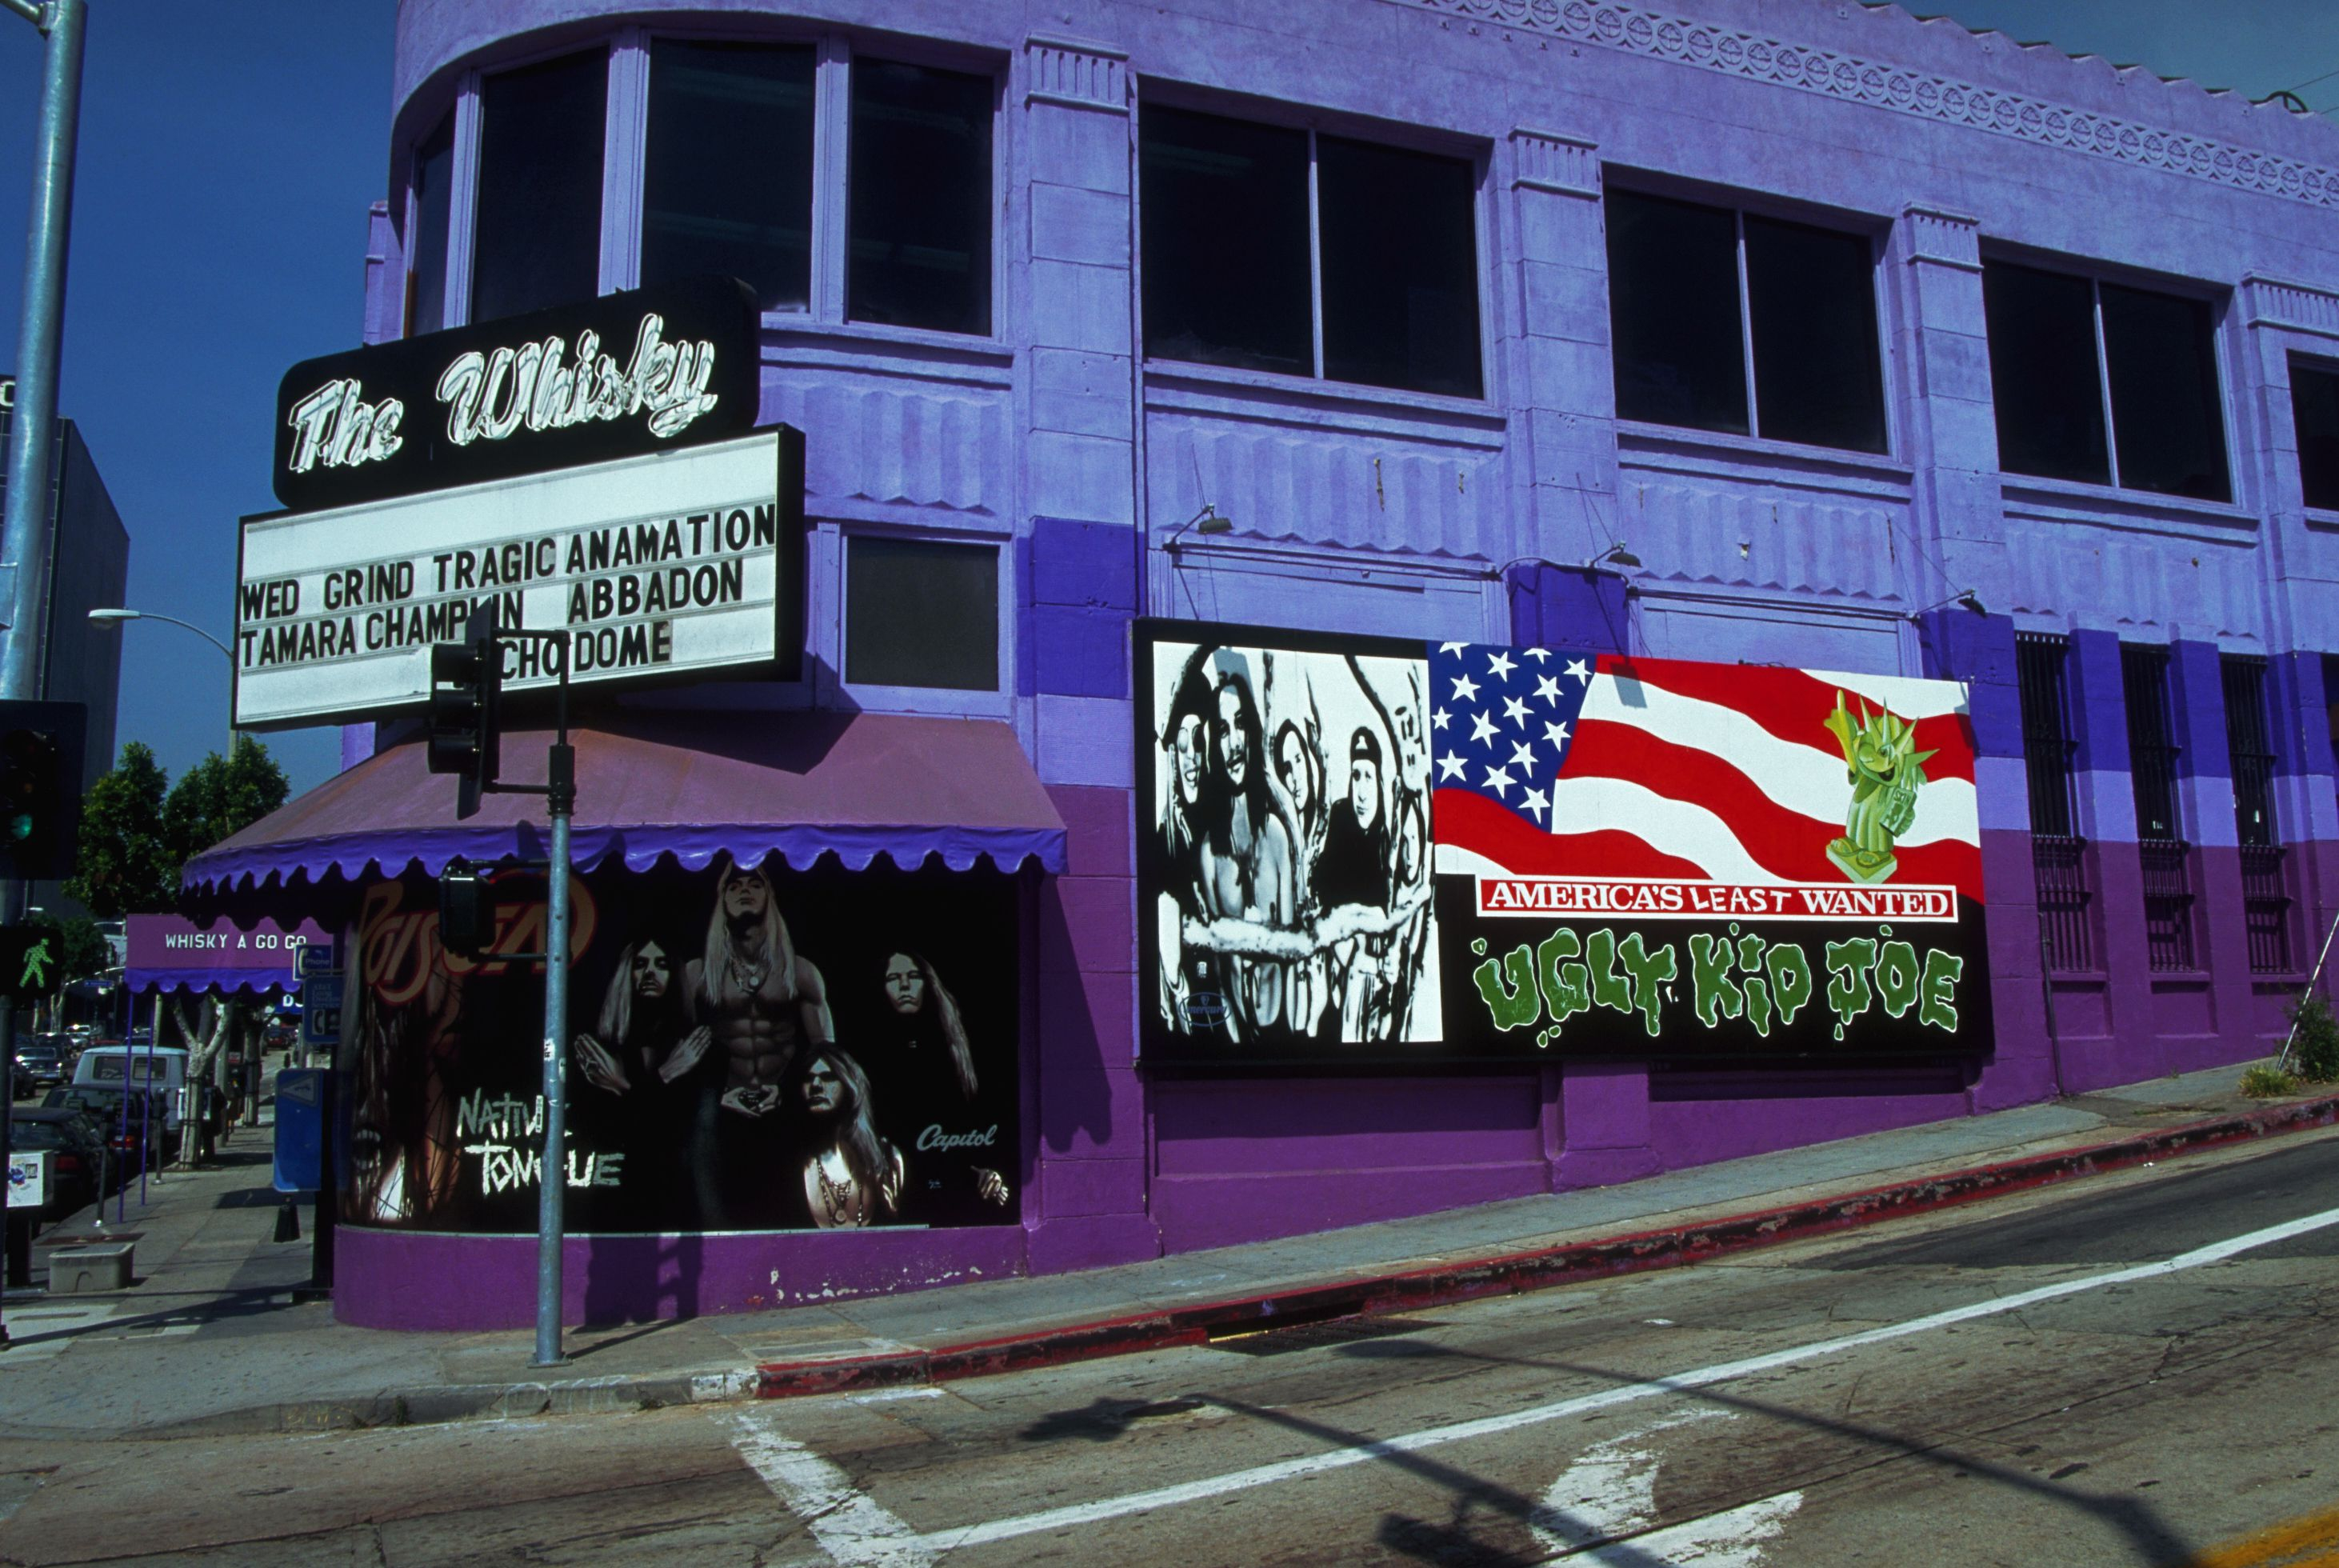 Whisky A Go Go, A Live Music Icon On The Sunset Strip In Whiskey A Go Go Schedule